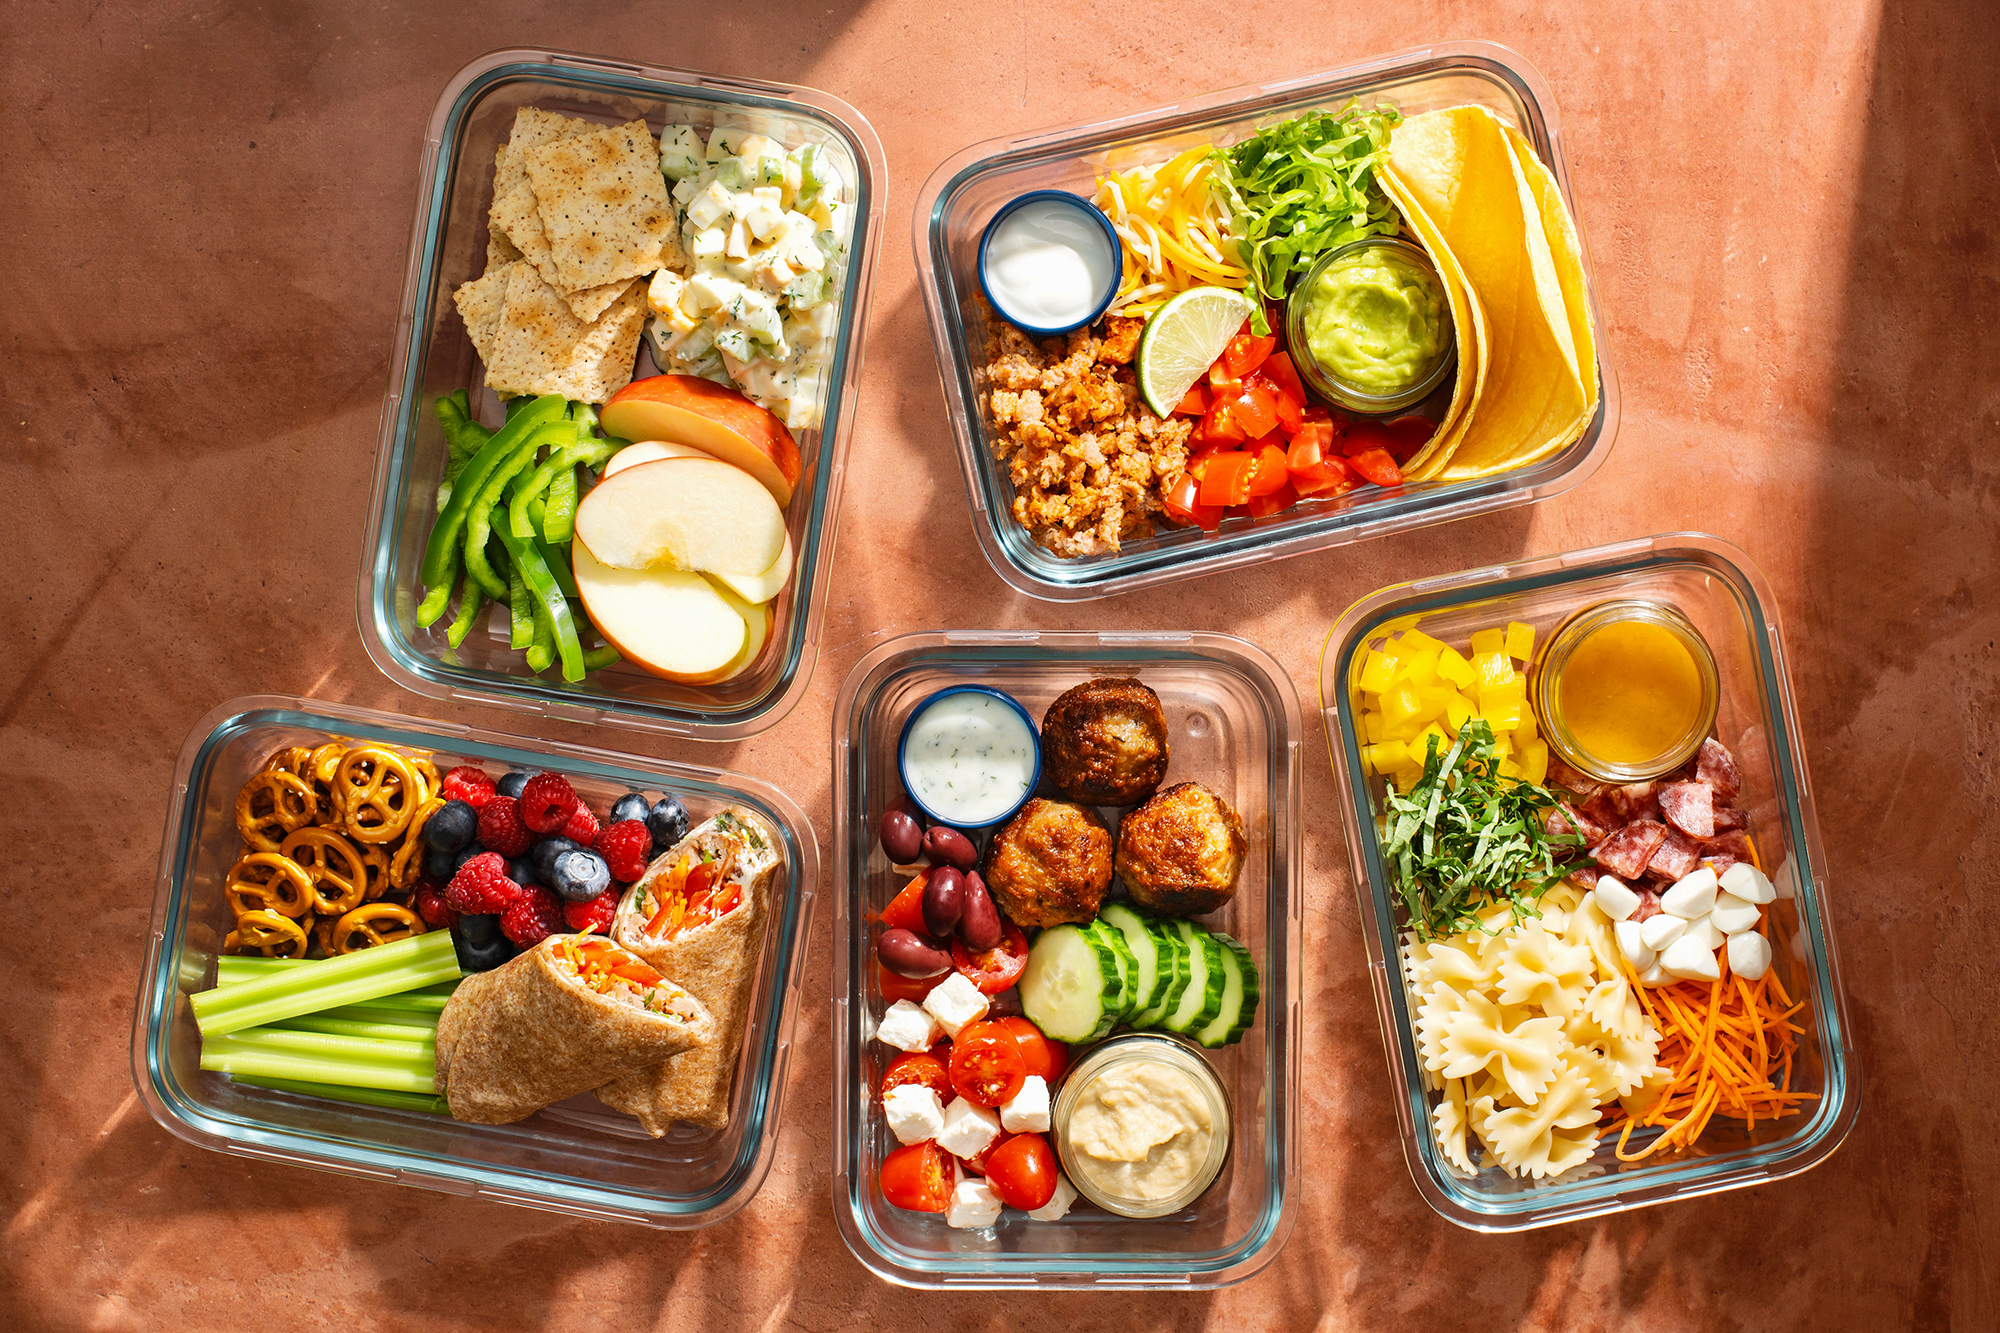 Several glass lunch boxes with a variety of foods packed in them on a terracotta colored surface